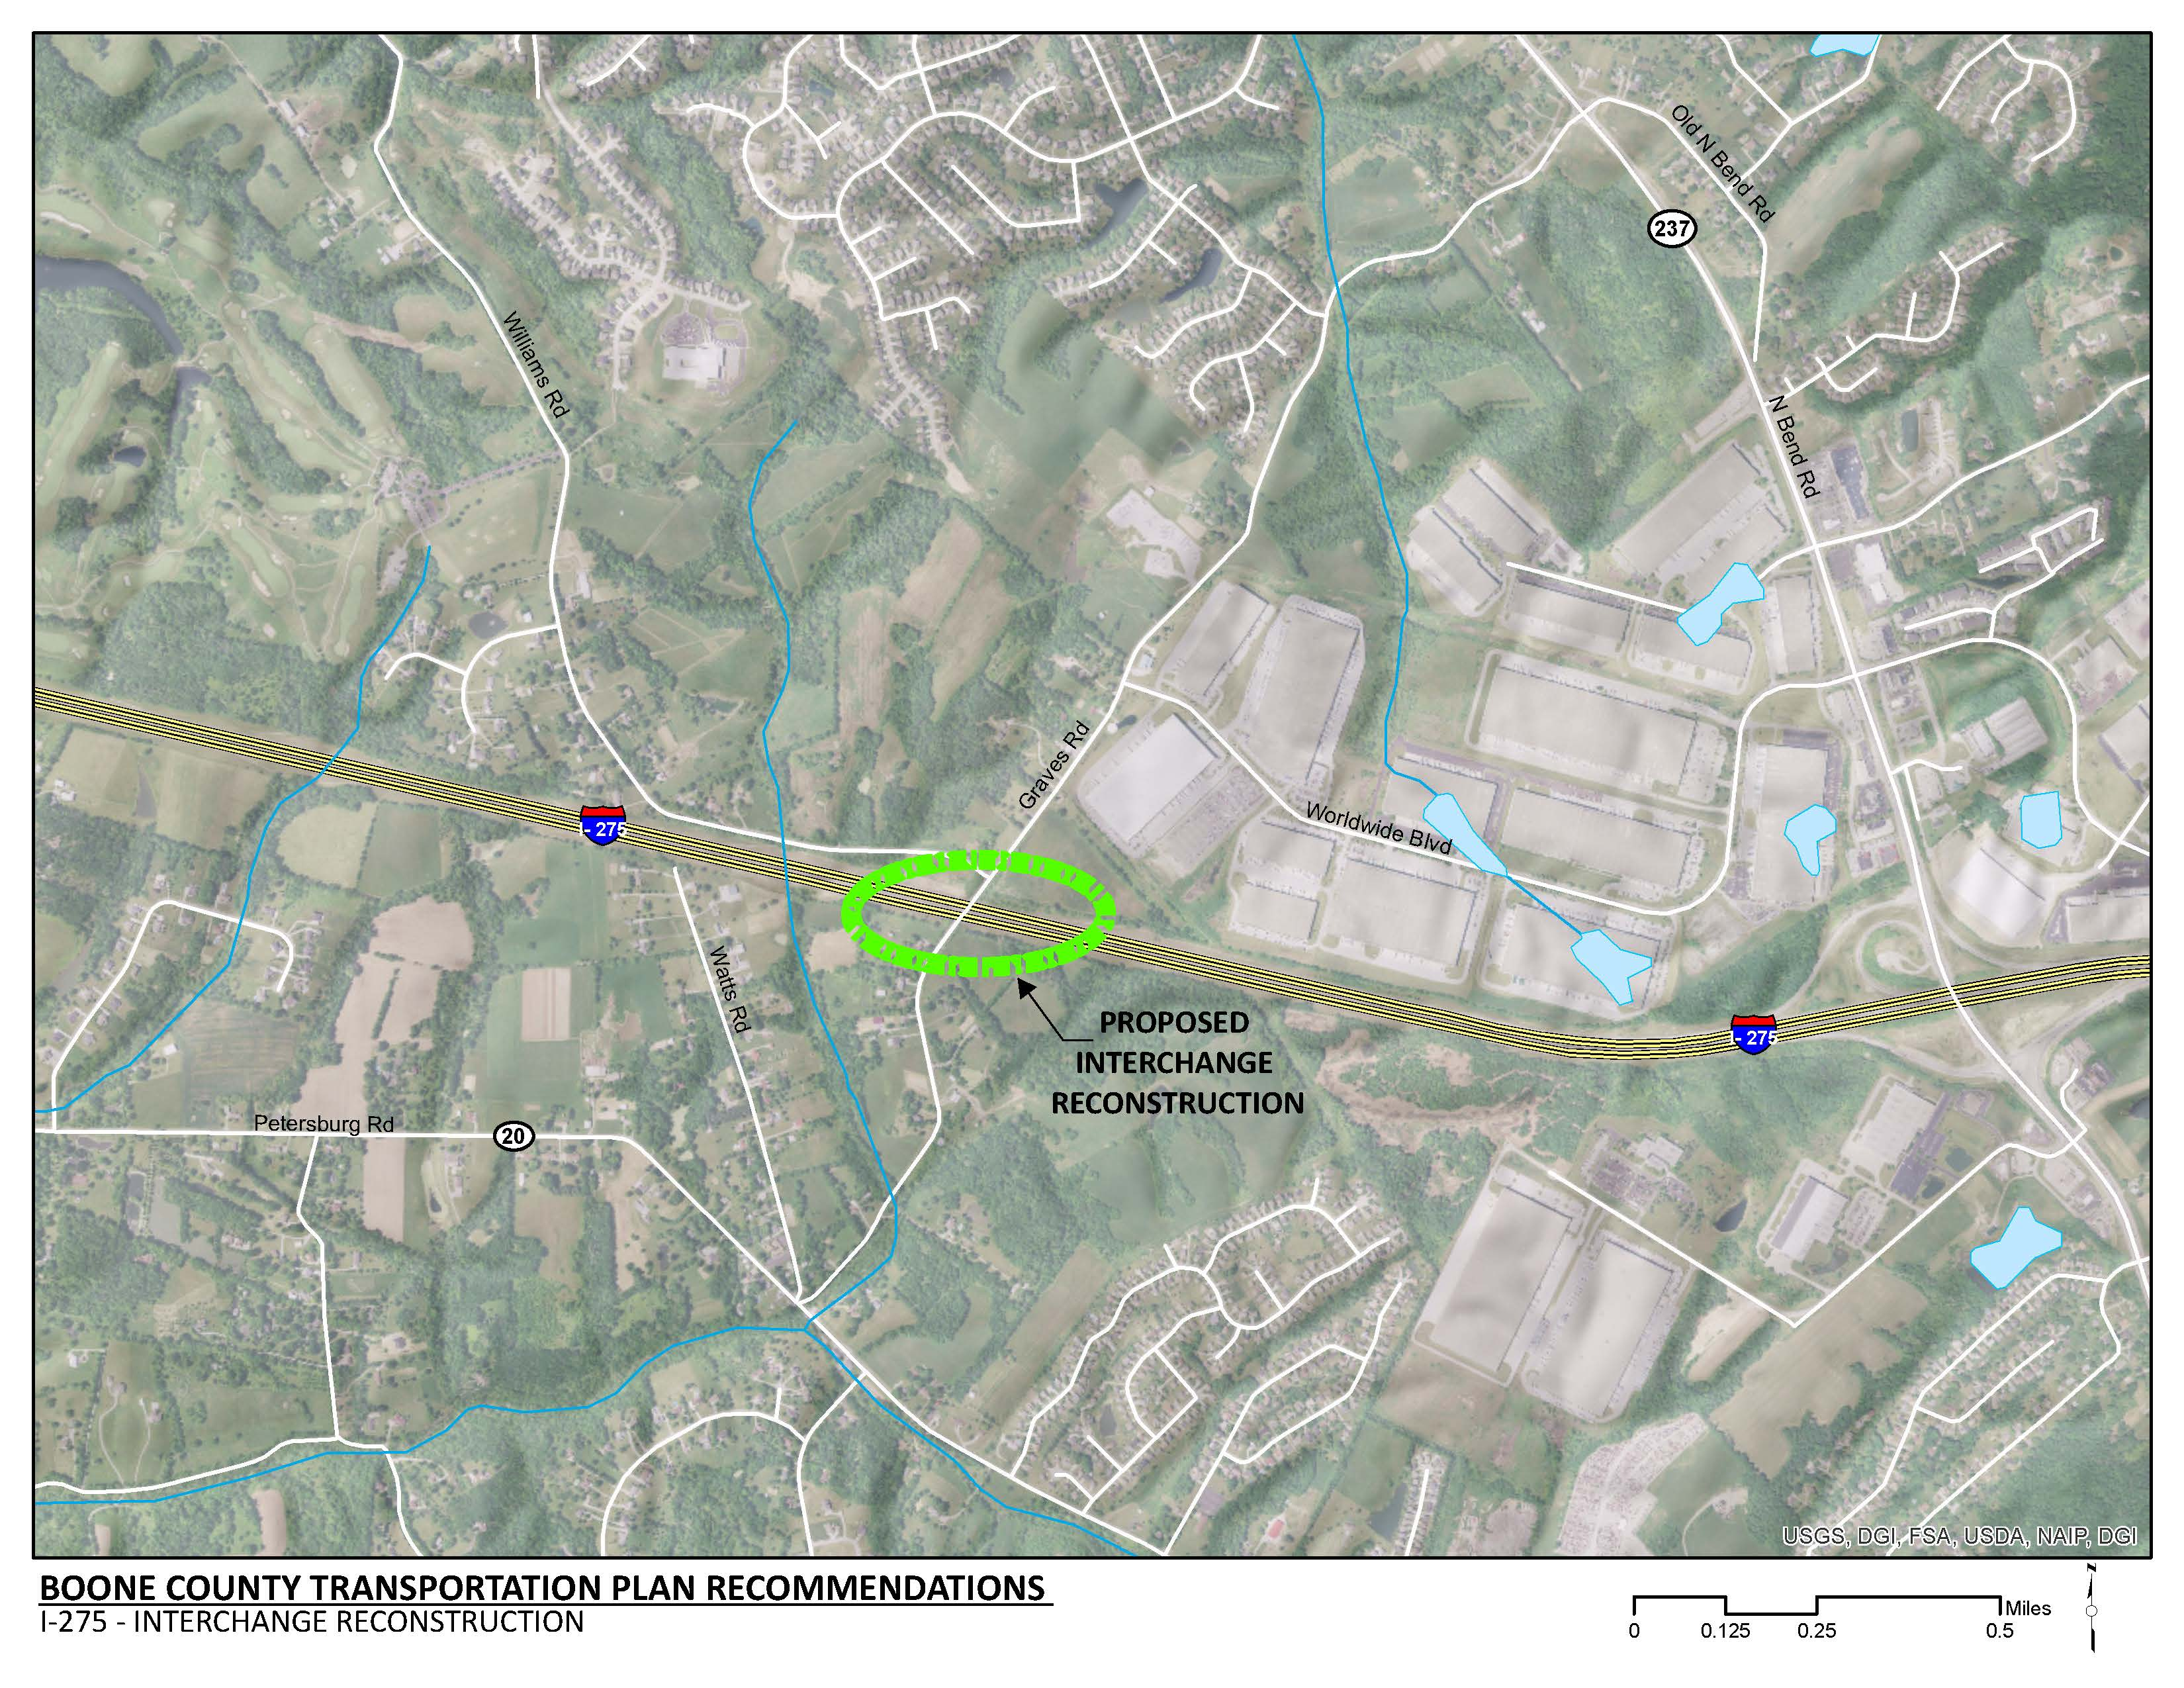 Graves Road Interchange   Boone County Transportation Plan on kentucky roads, ky road maps driving directions, ky atlas map, nj county map roads, ky maps of columbia water, ky map 1780, ky tenn map, va maps with county roads, ky appalachian mountains map, mercer county ky roads, franklin county ky roads, map of rockcastle county ky roads, ky fault line map, ky counties map, ky bourbon trail map, ky highway map, ky state map,